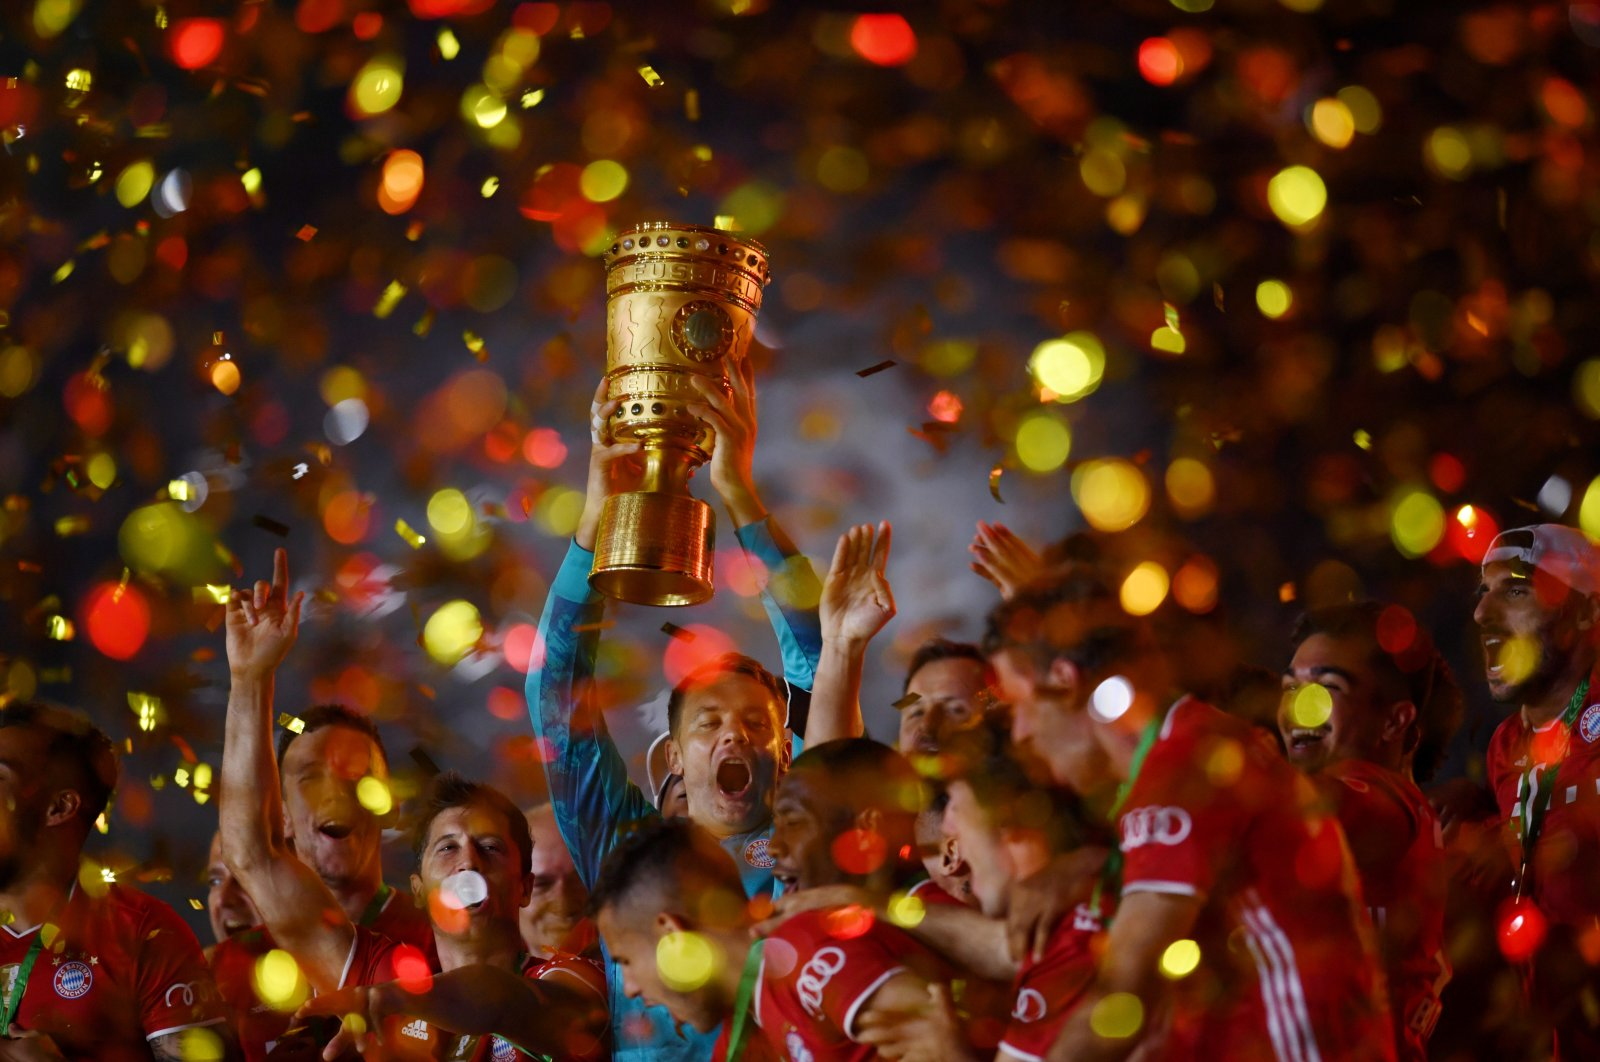 Bayern Munich's Manuel Neuer celebrates with the trophy after winning the Cup, in Berlin, Germany, July 4, 2020. (REUTERS Photo)